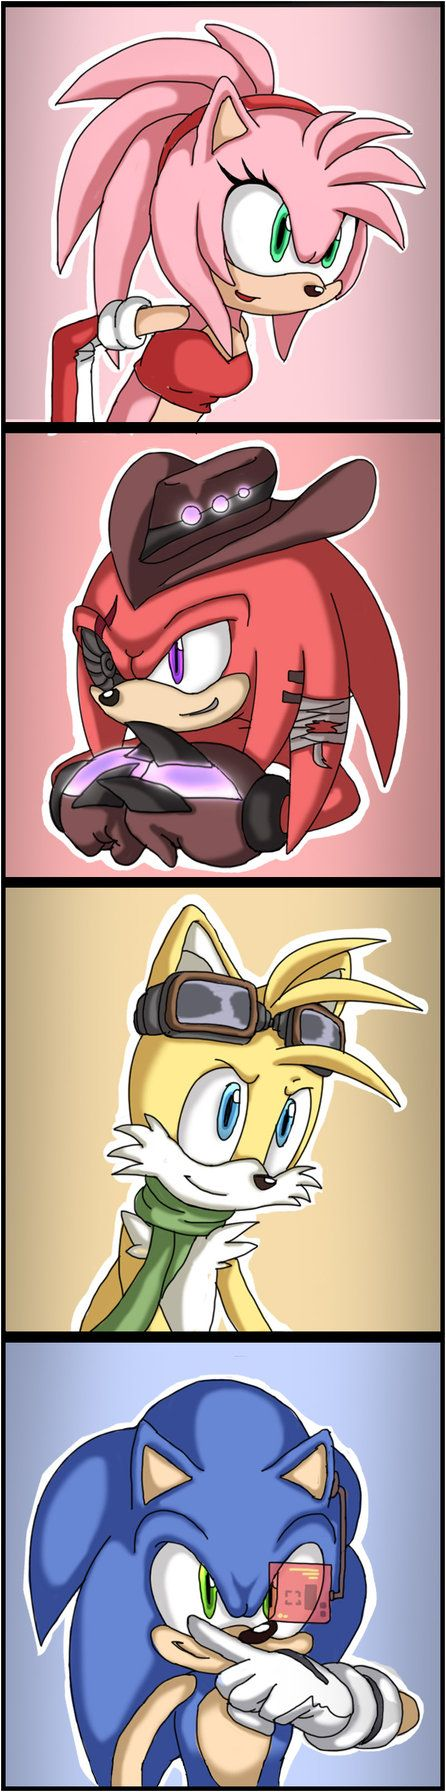 Sonic Team 5YL - be ready for the day by Shira-hedgie on DeviantArt